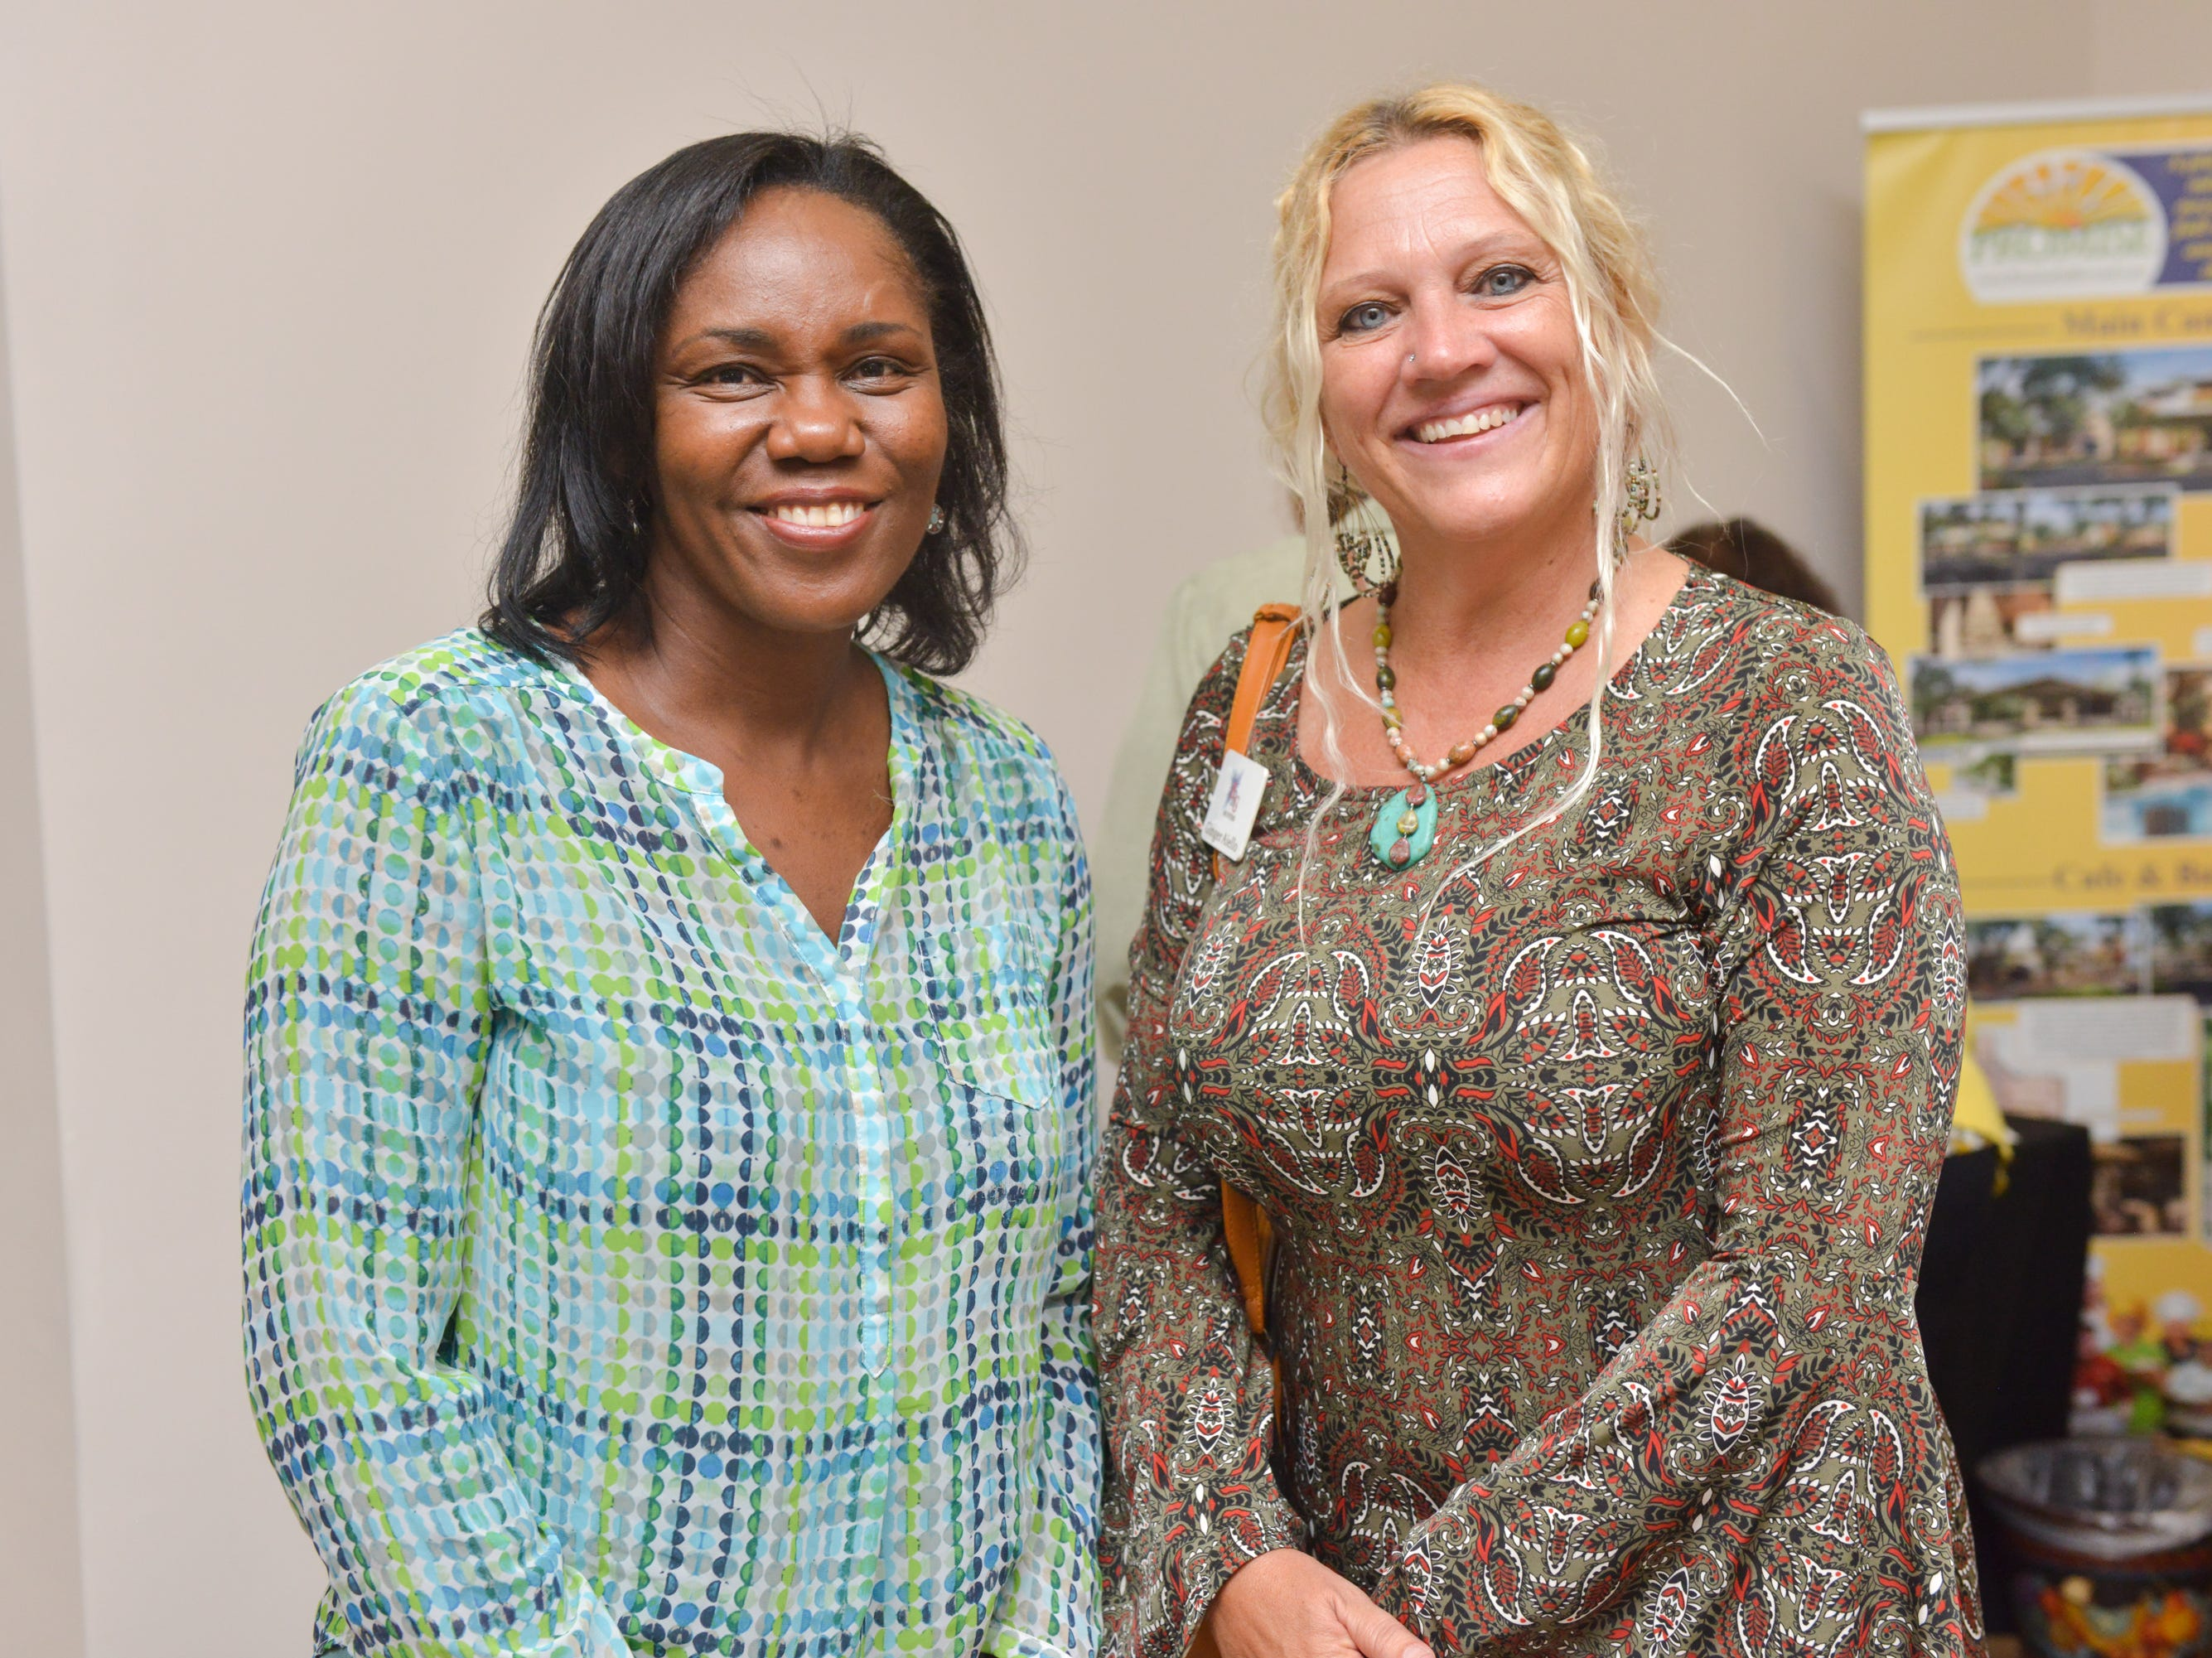 Cheryl Liburd and Ginger Aiello during the Women of Excellence Gathering at Promise in Brevard sponsored by the Melbourne Regional Chamber.